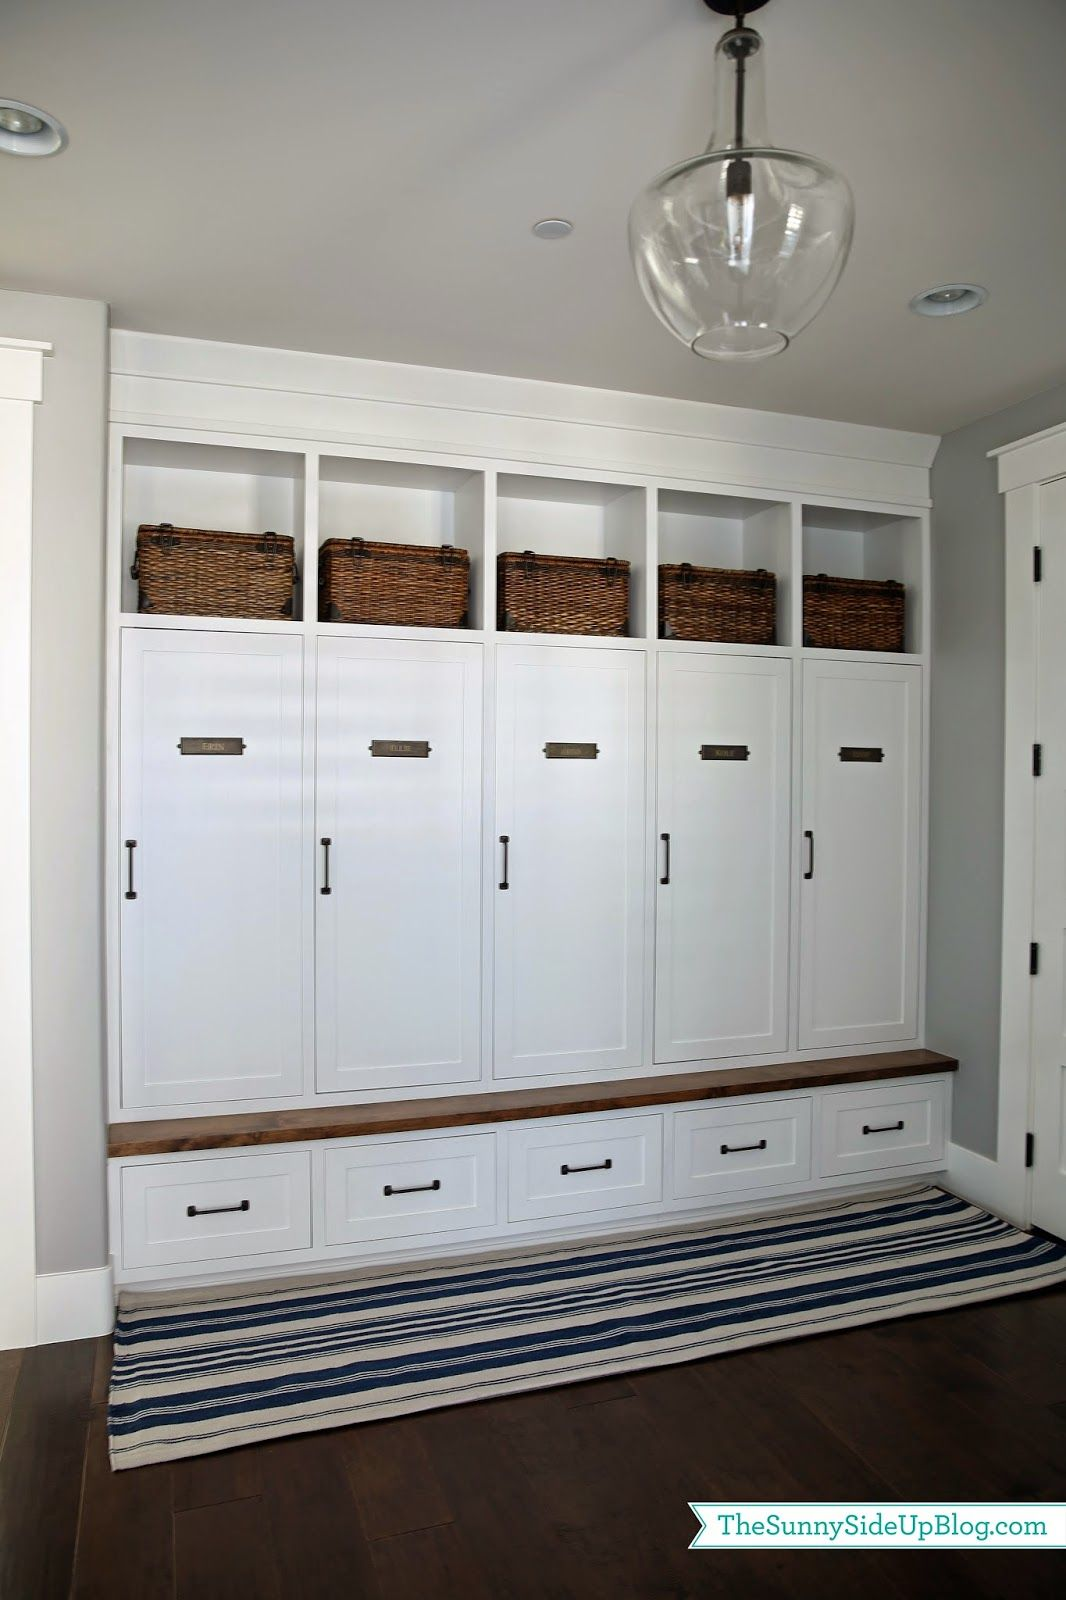 So I Bought A New Rug For Our Mudroom A Navy Nautical Striped Runner From Pottery Barn And I Love The Look Of It Mud Room Storage Mudroom Mudroom Lockers